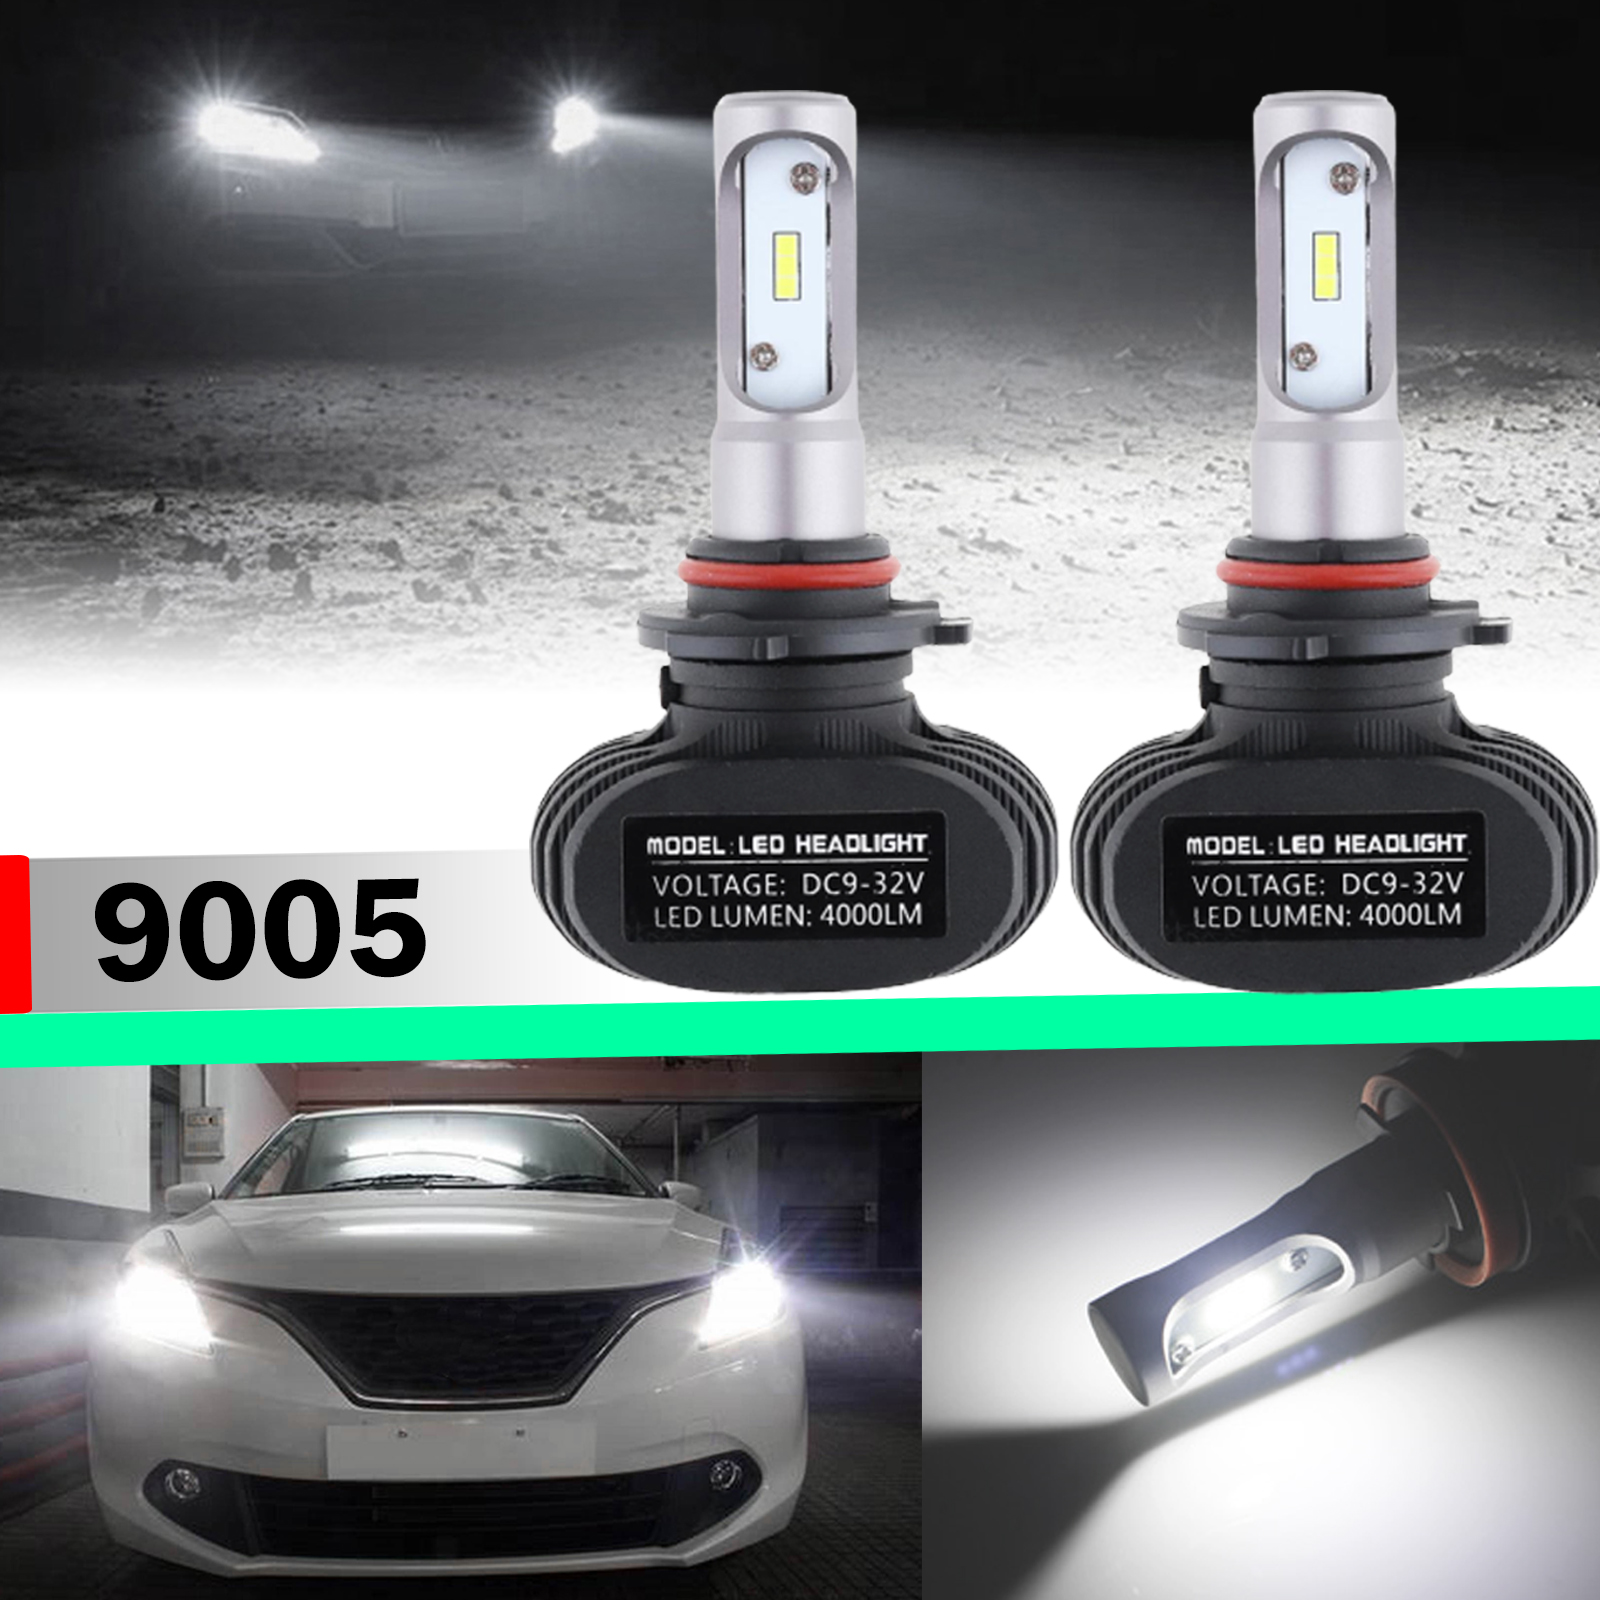 Nighteye 9005 HB3 LED Headlight Conversion Kit Bulbs Lamp 6500K White 8000LM 50W